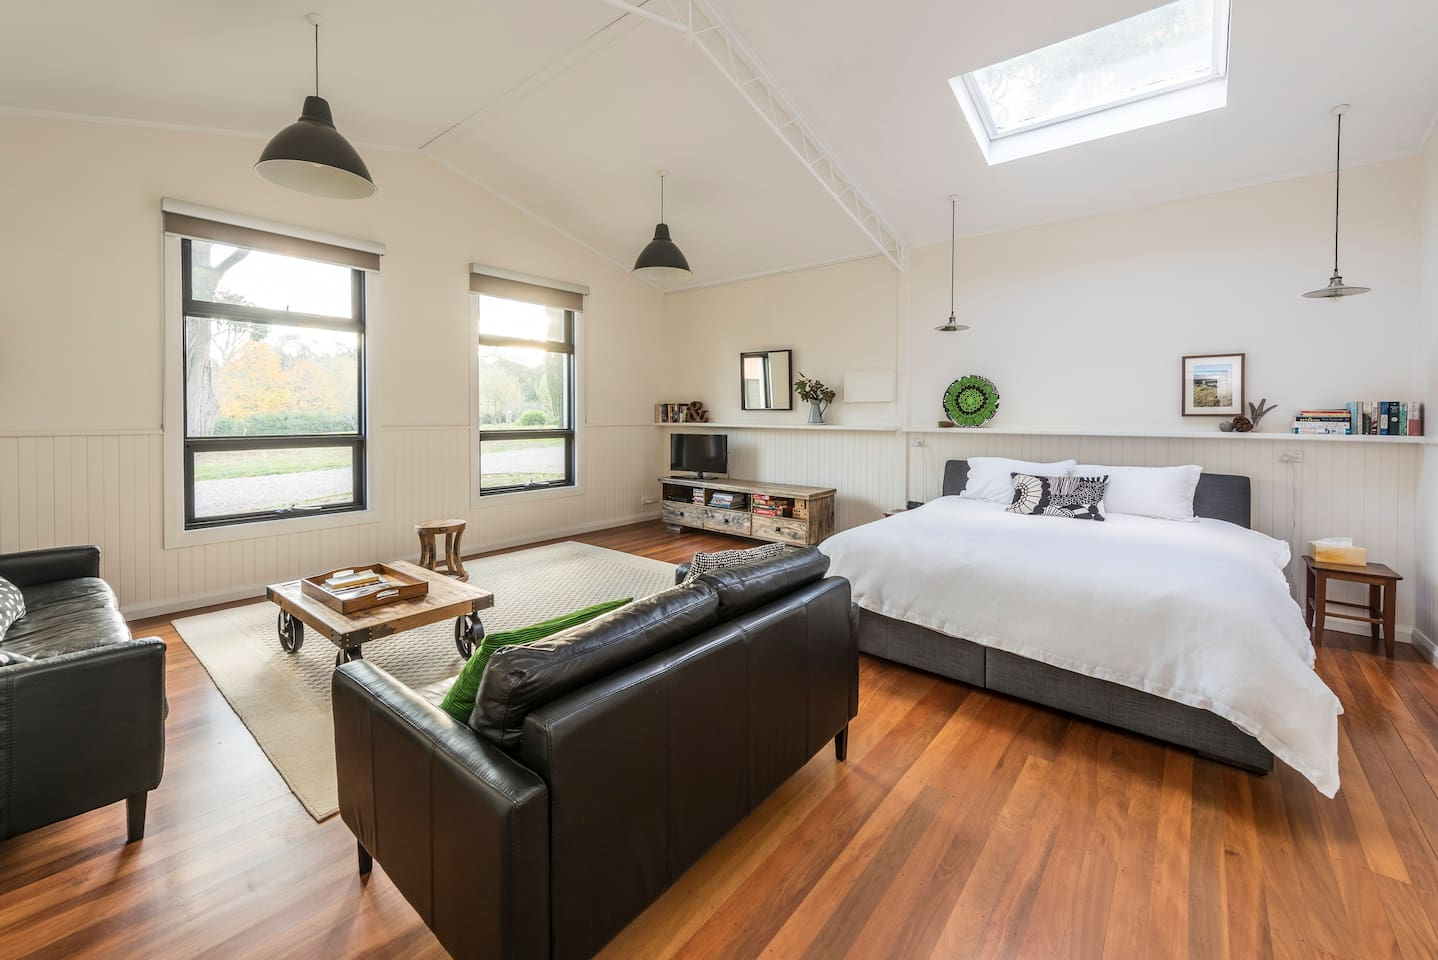 The Studio room contains a KING bed with an overhead skylight for evening stargazing. Looking out to our 30 orchard trees. Reverse cycle air con.